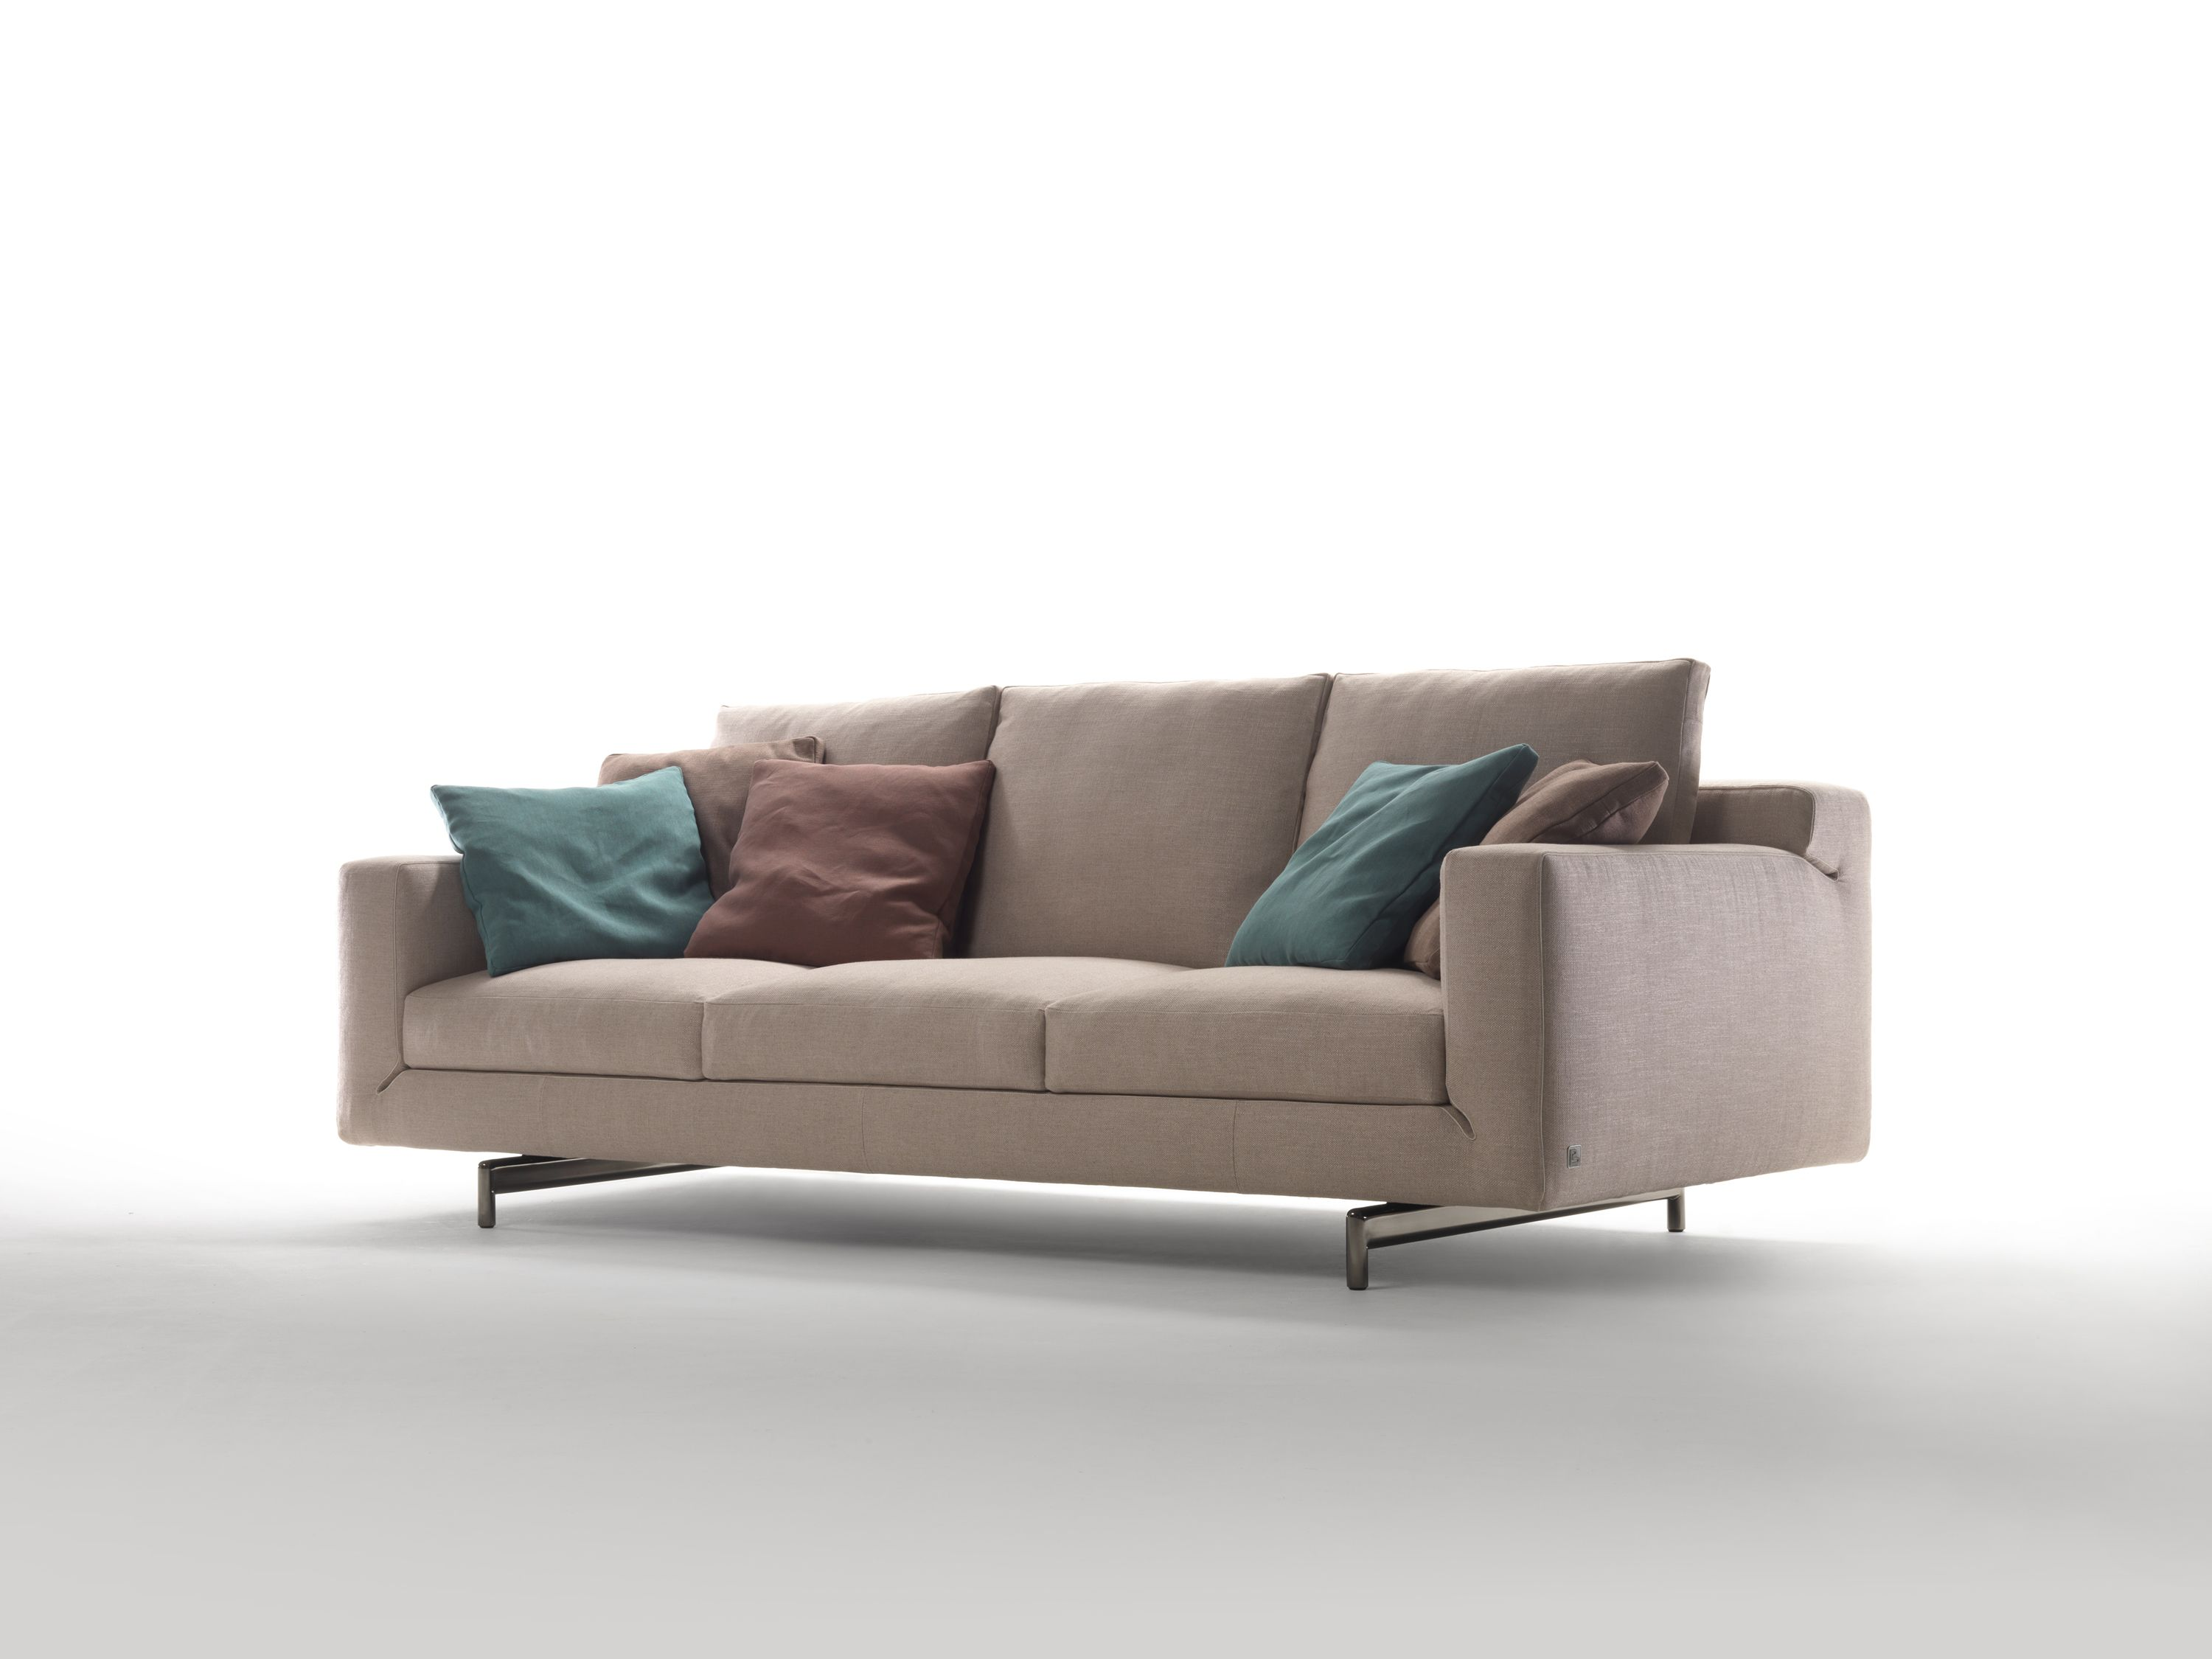 Taylor Sofa,Busnelli/ The Prime